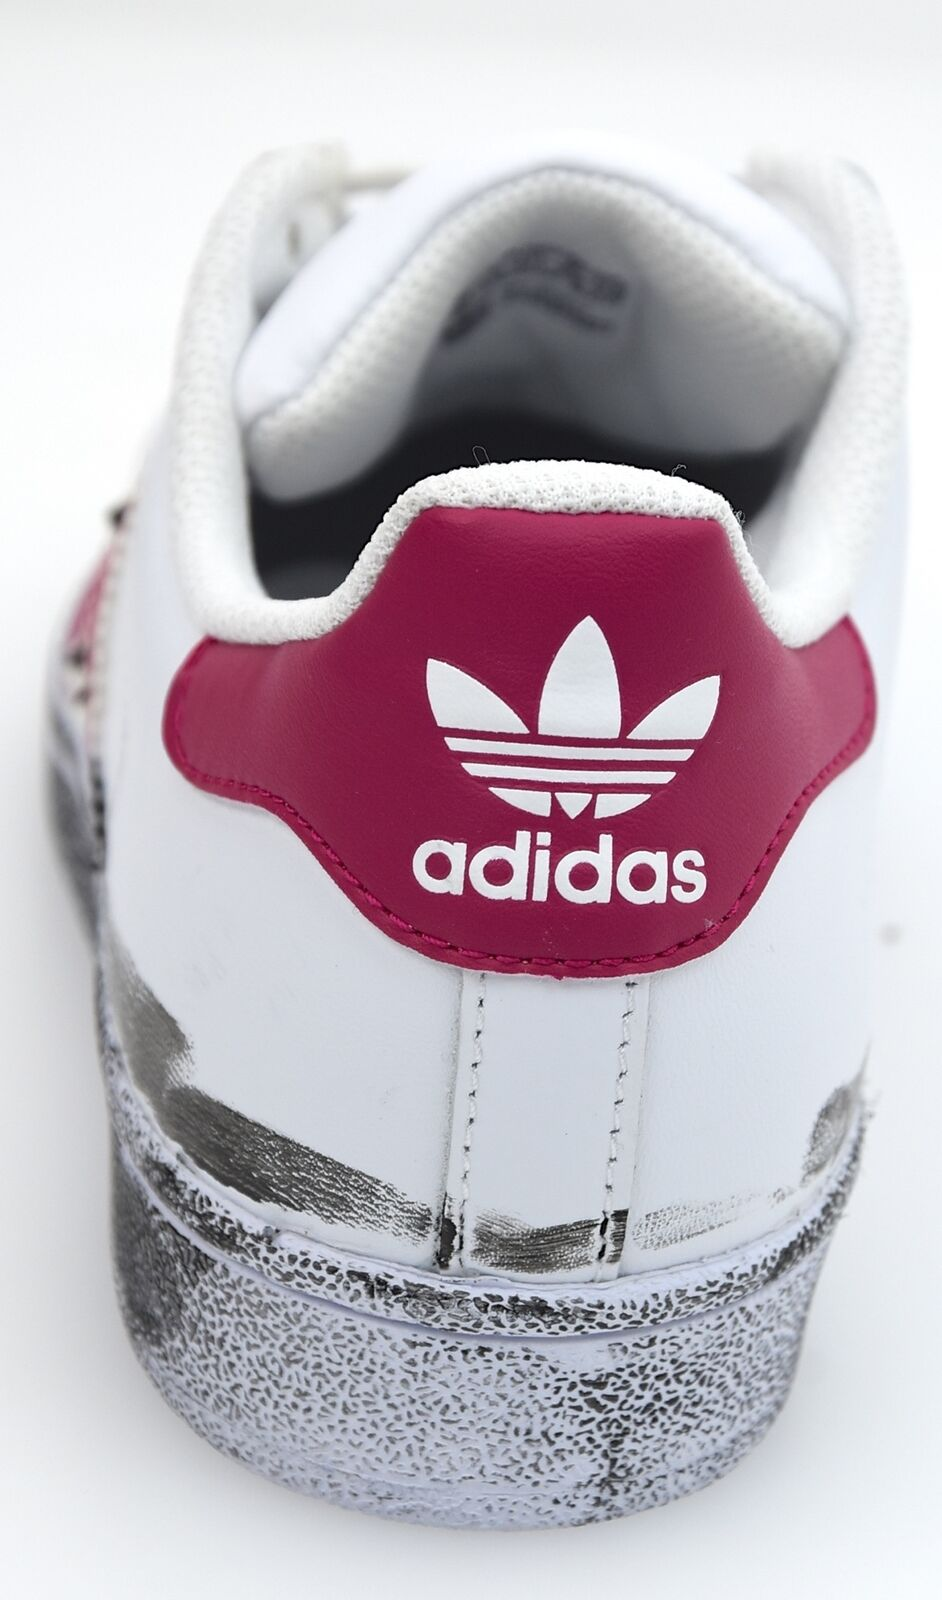 ADIDAS WOMAN SNEAKER SHOES CASUAL CASUAL CASUAL FREE TIME LEATHER CODE B23644 SUPERS 5d4e22